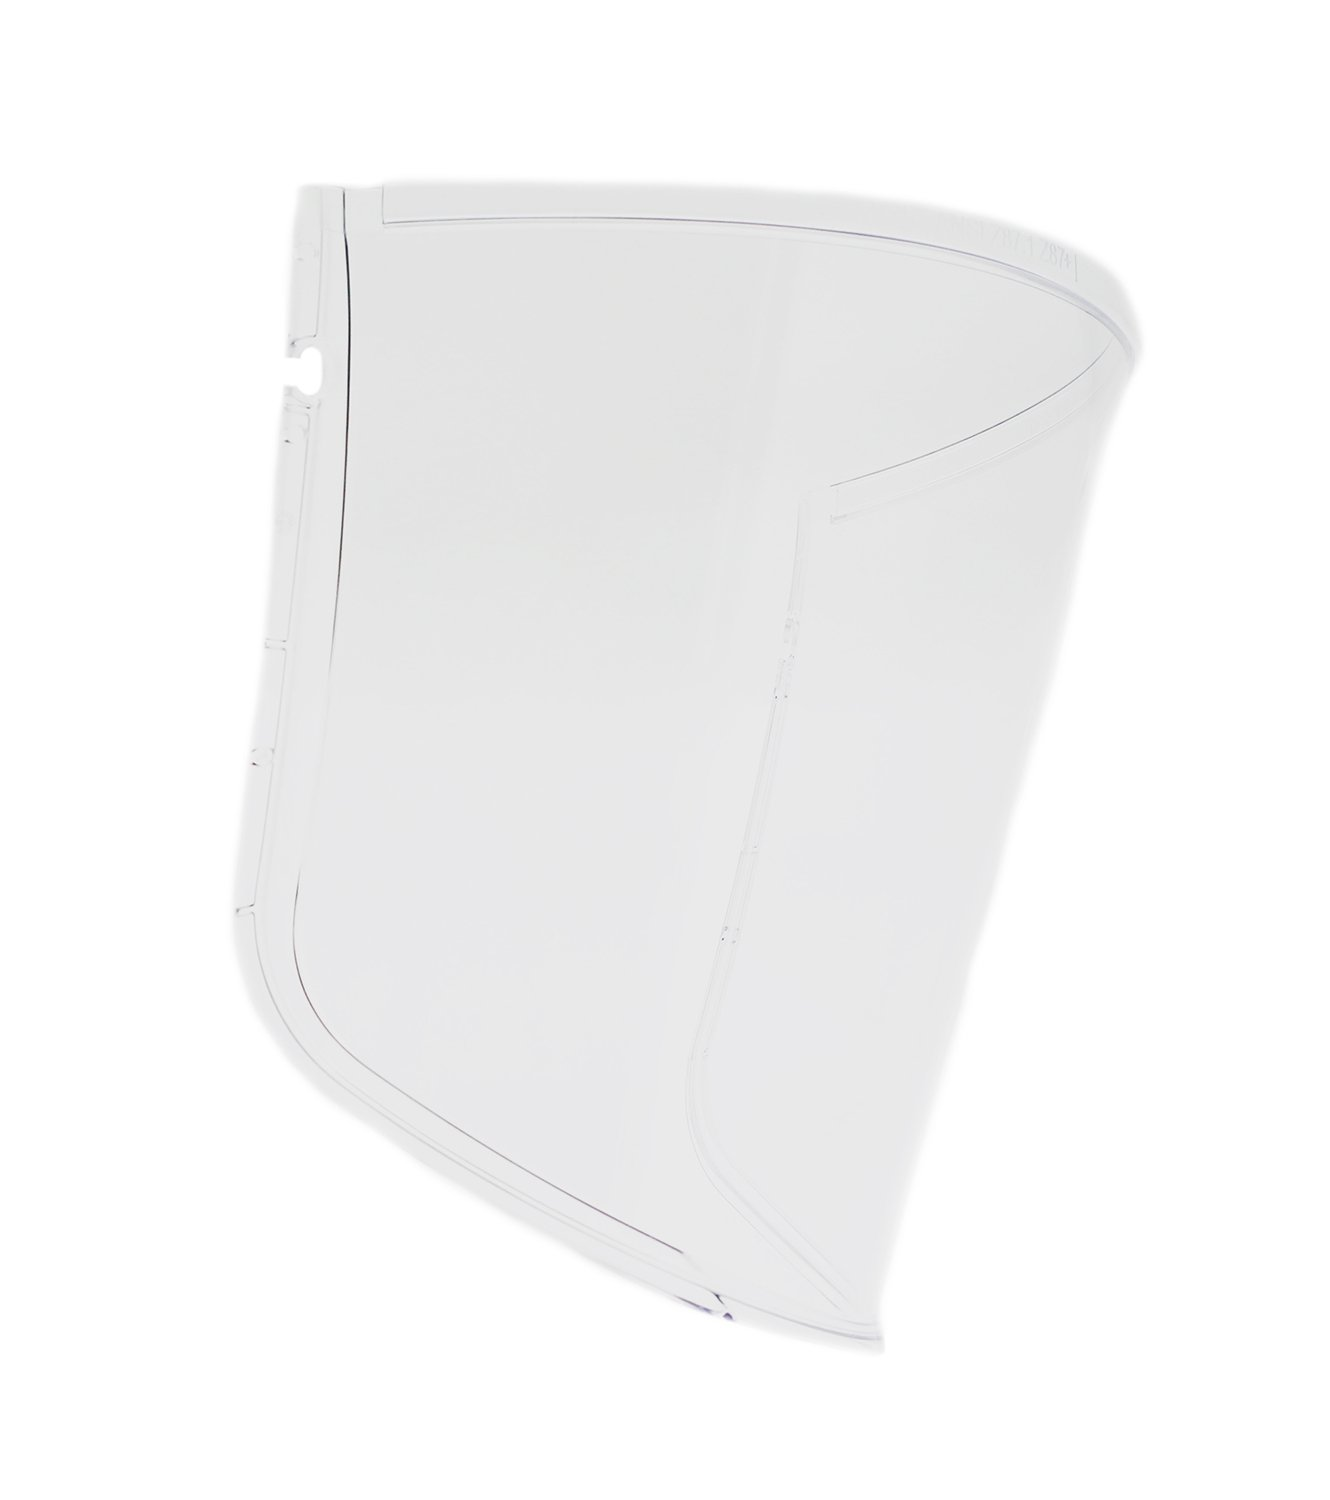 3M Versaflo M-Series M-925/37323 Polycarbonate Face Shield Window - 70071562170 [PRICE is per EACH] by 3M